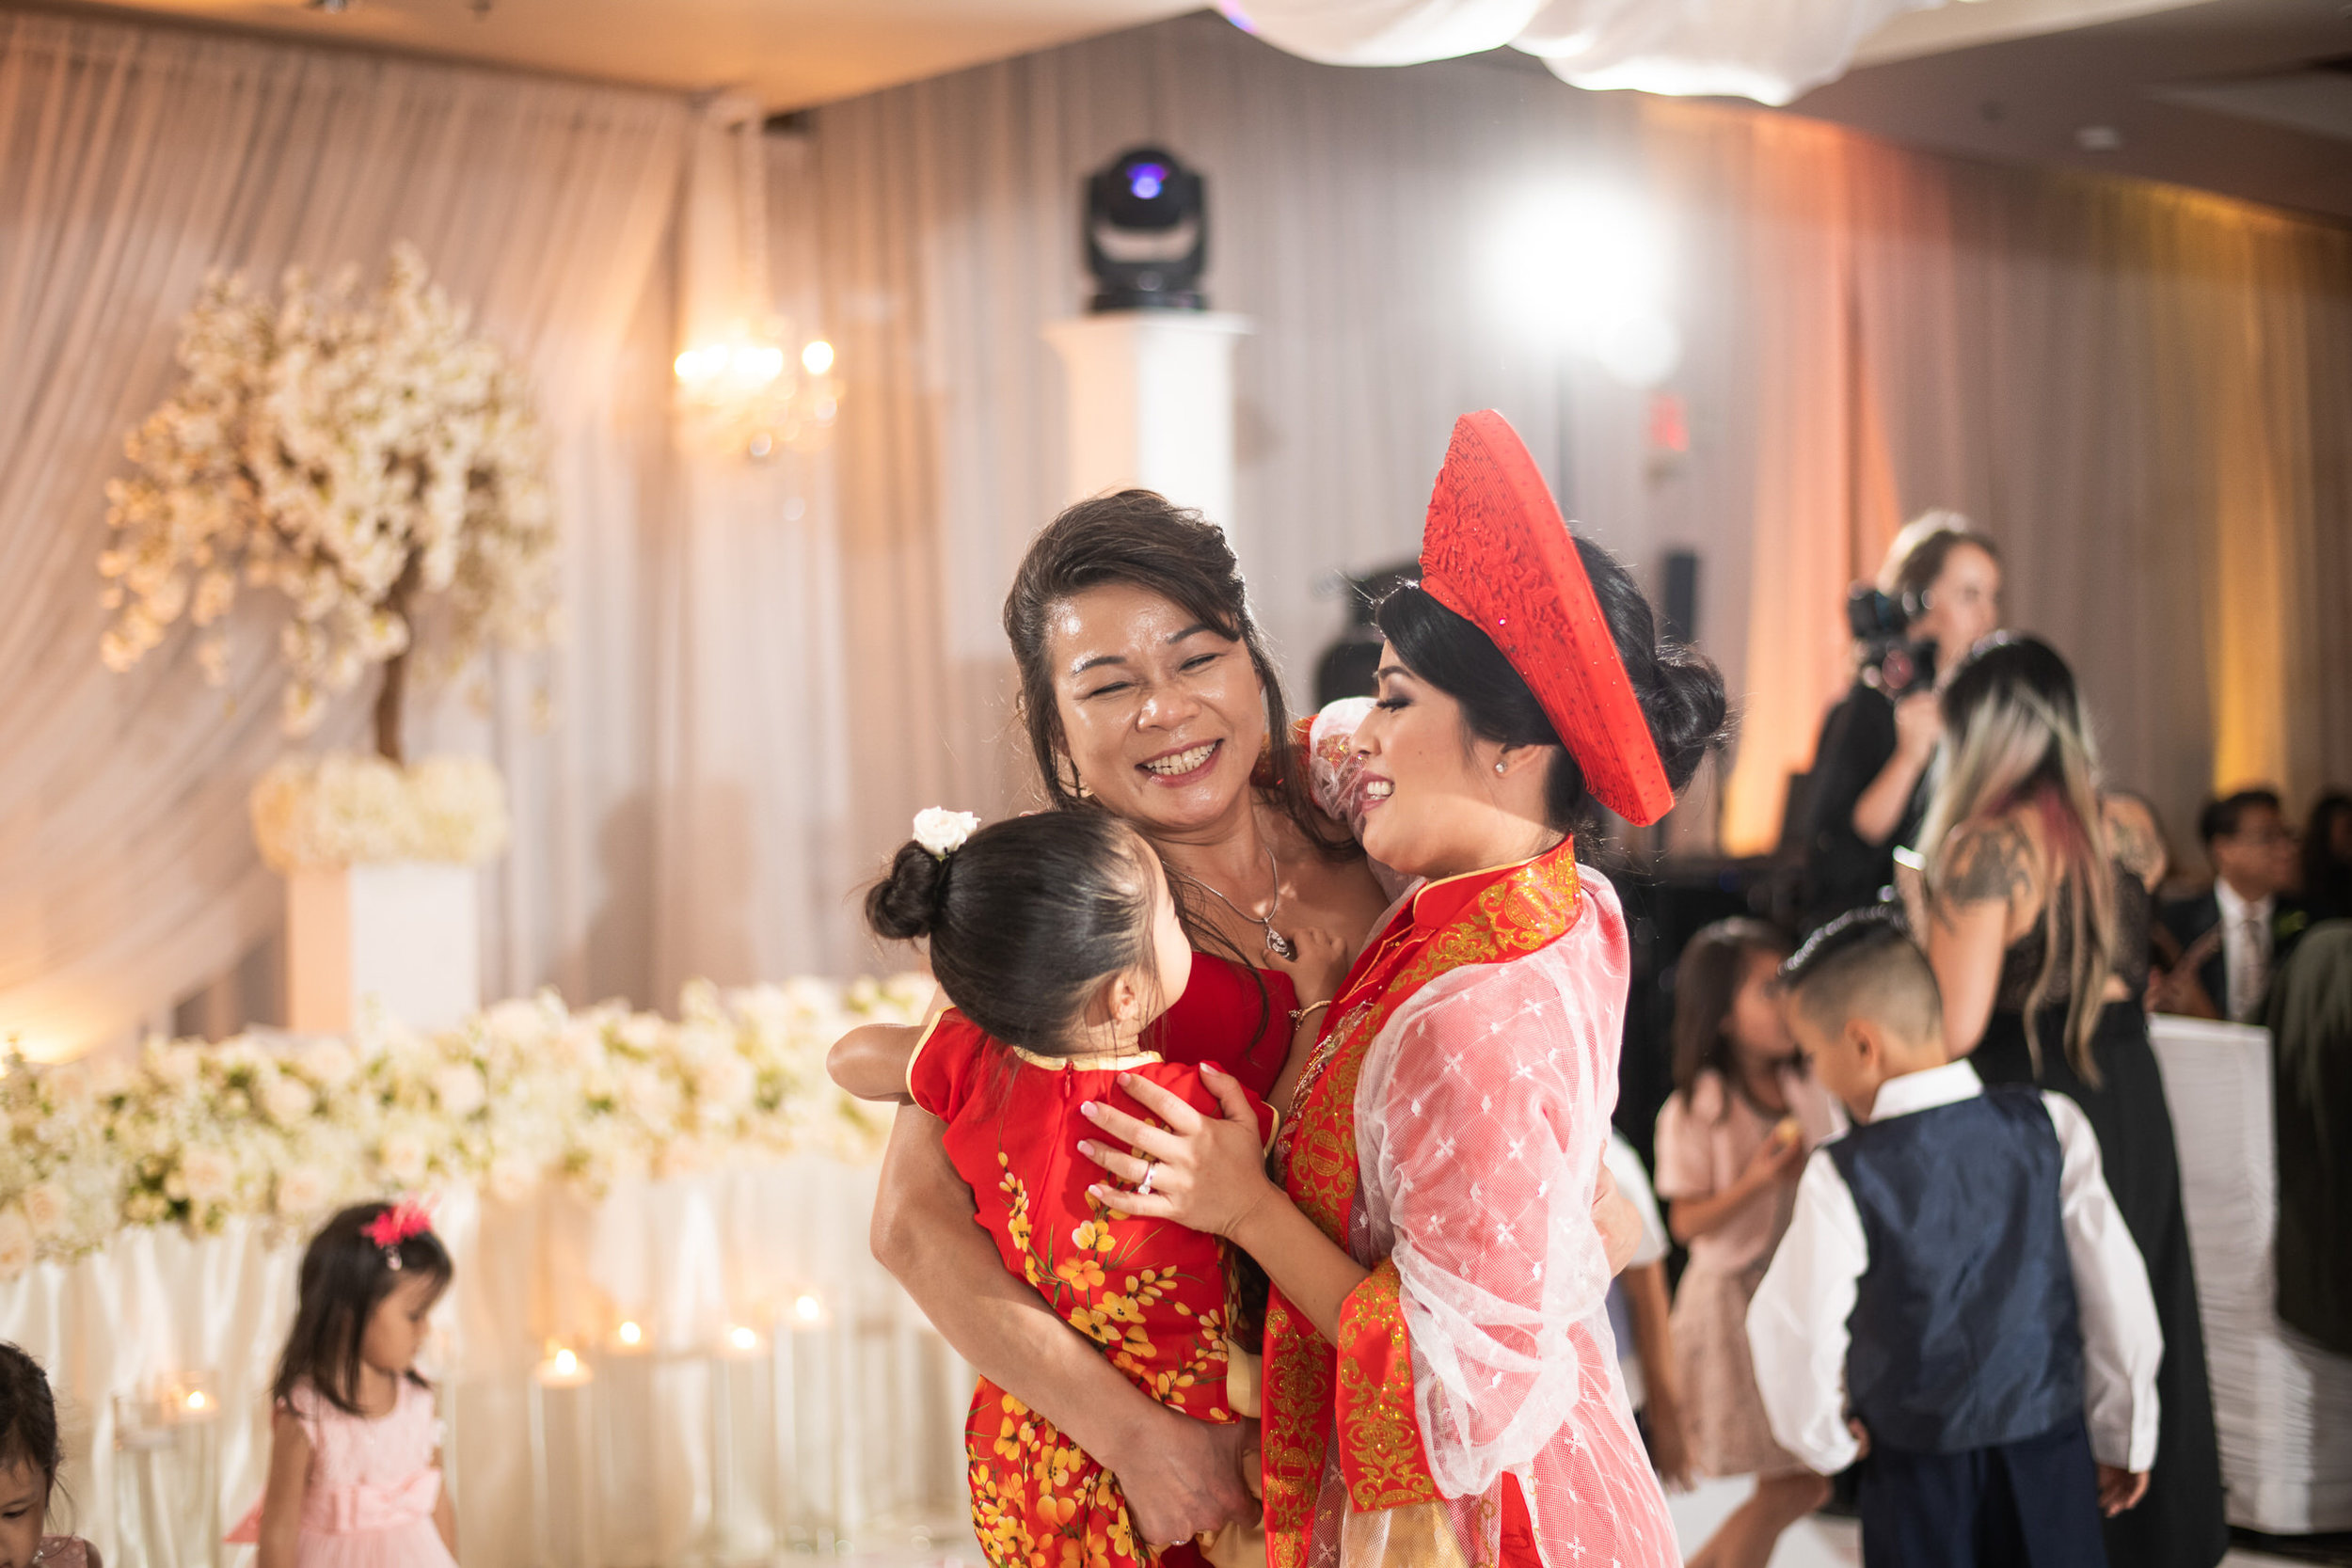 Dream_Wedding_Thanh_Thanh-3323.jpg